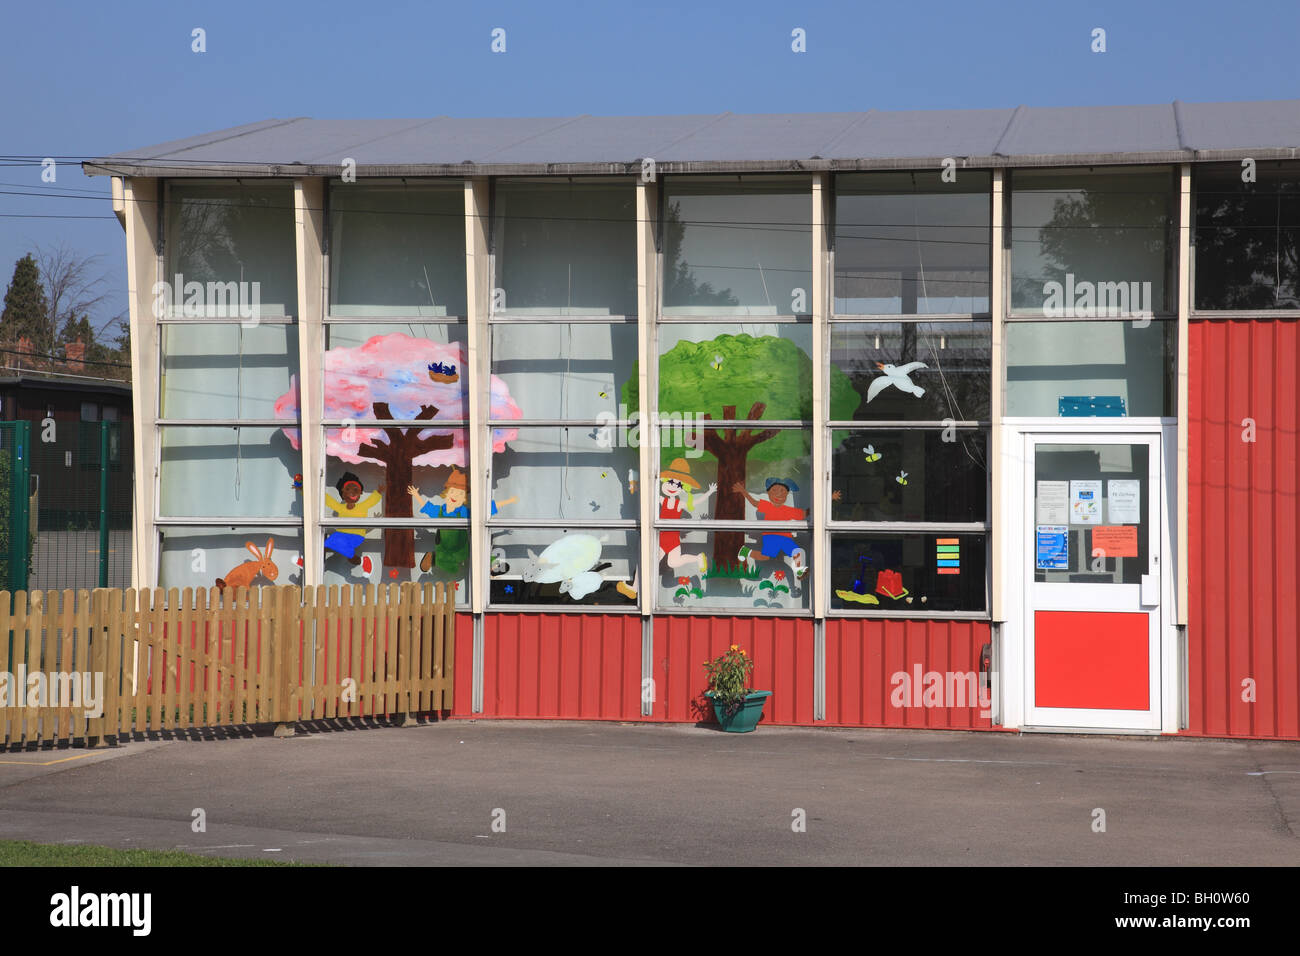 Exterior of an infants' school classroom with bright colourful paintings of trees, children and animals - Stock Image